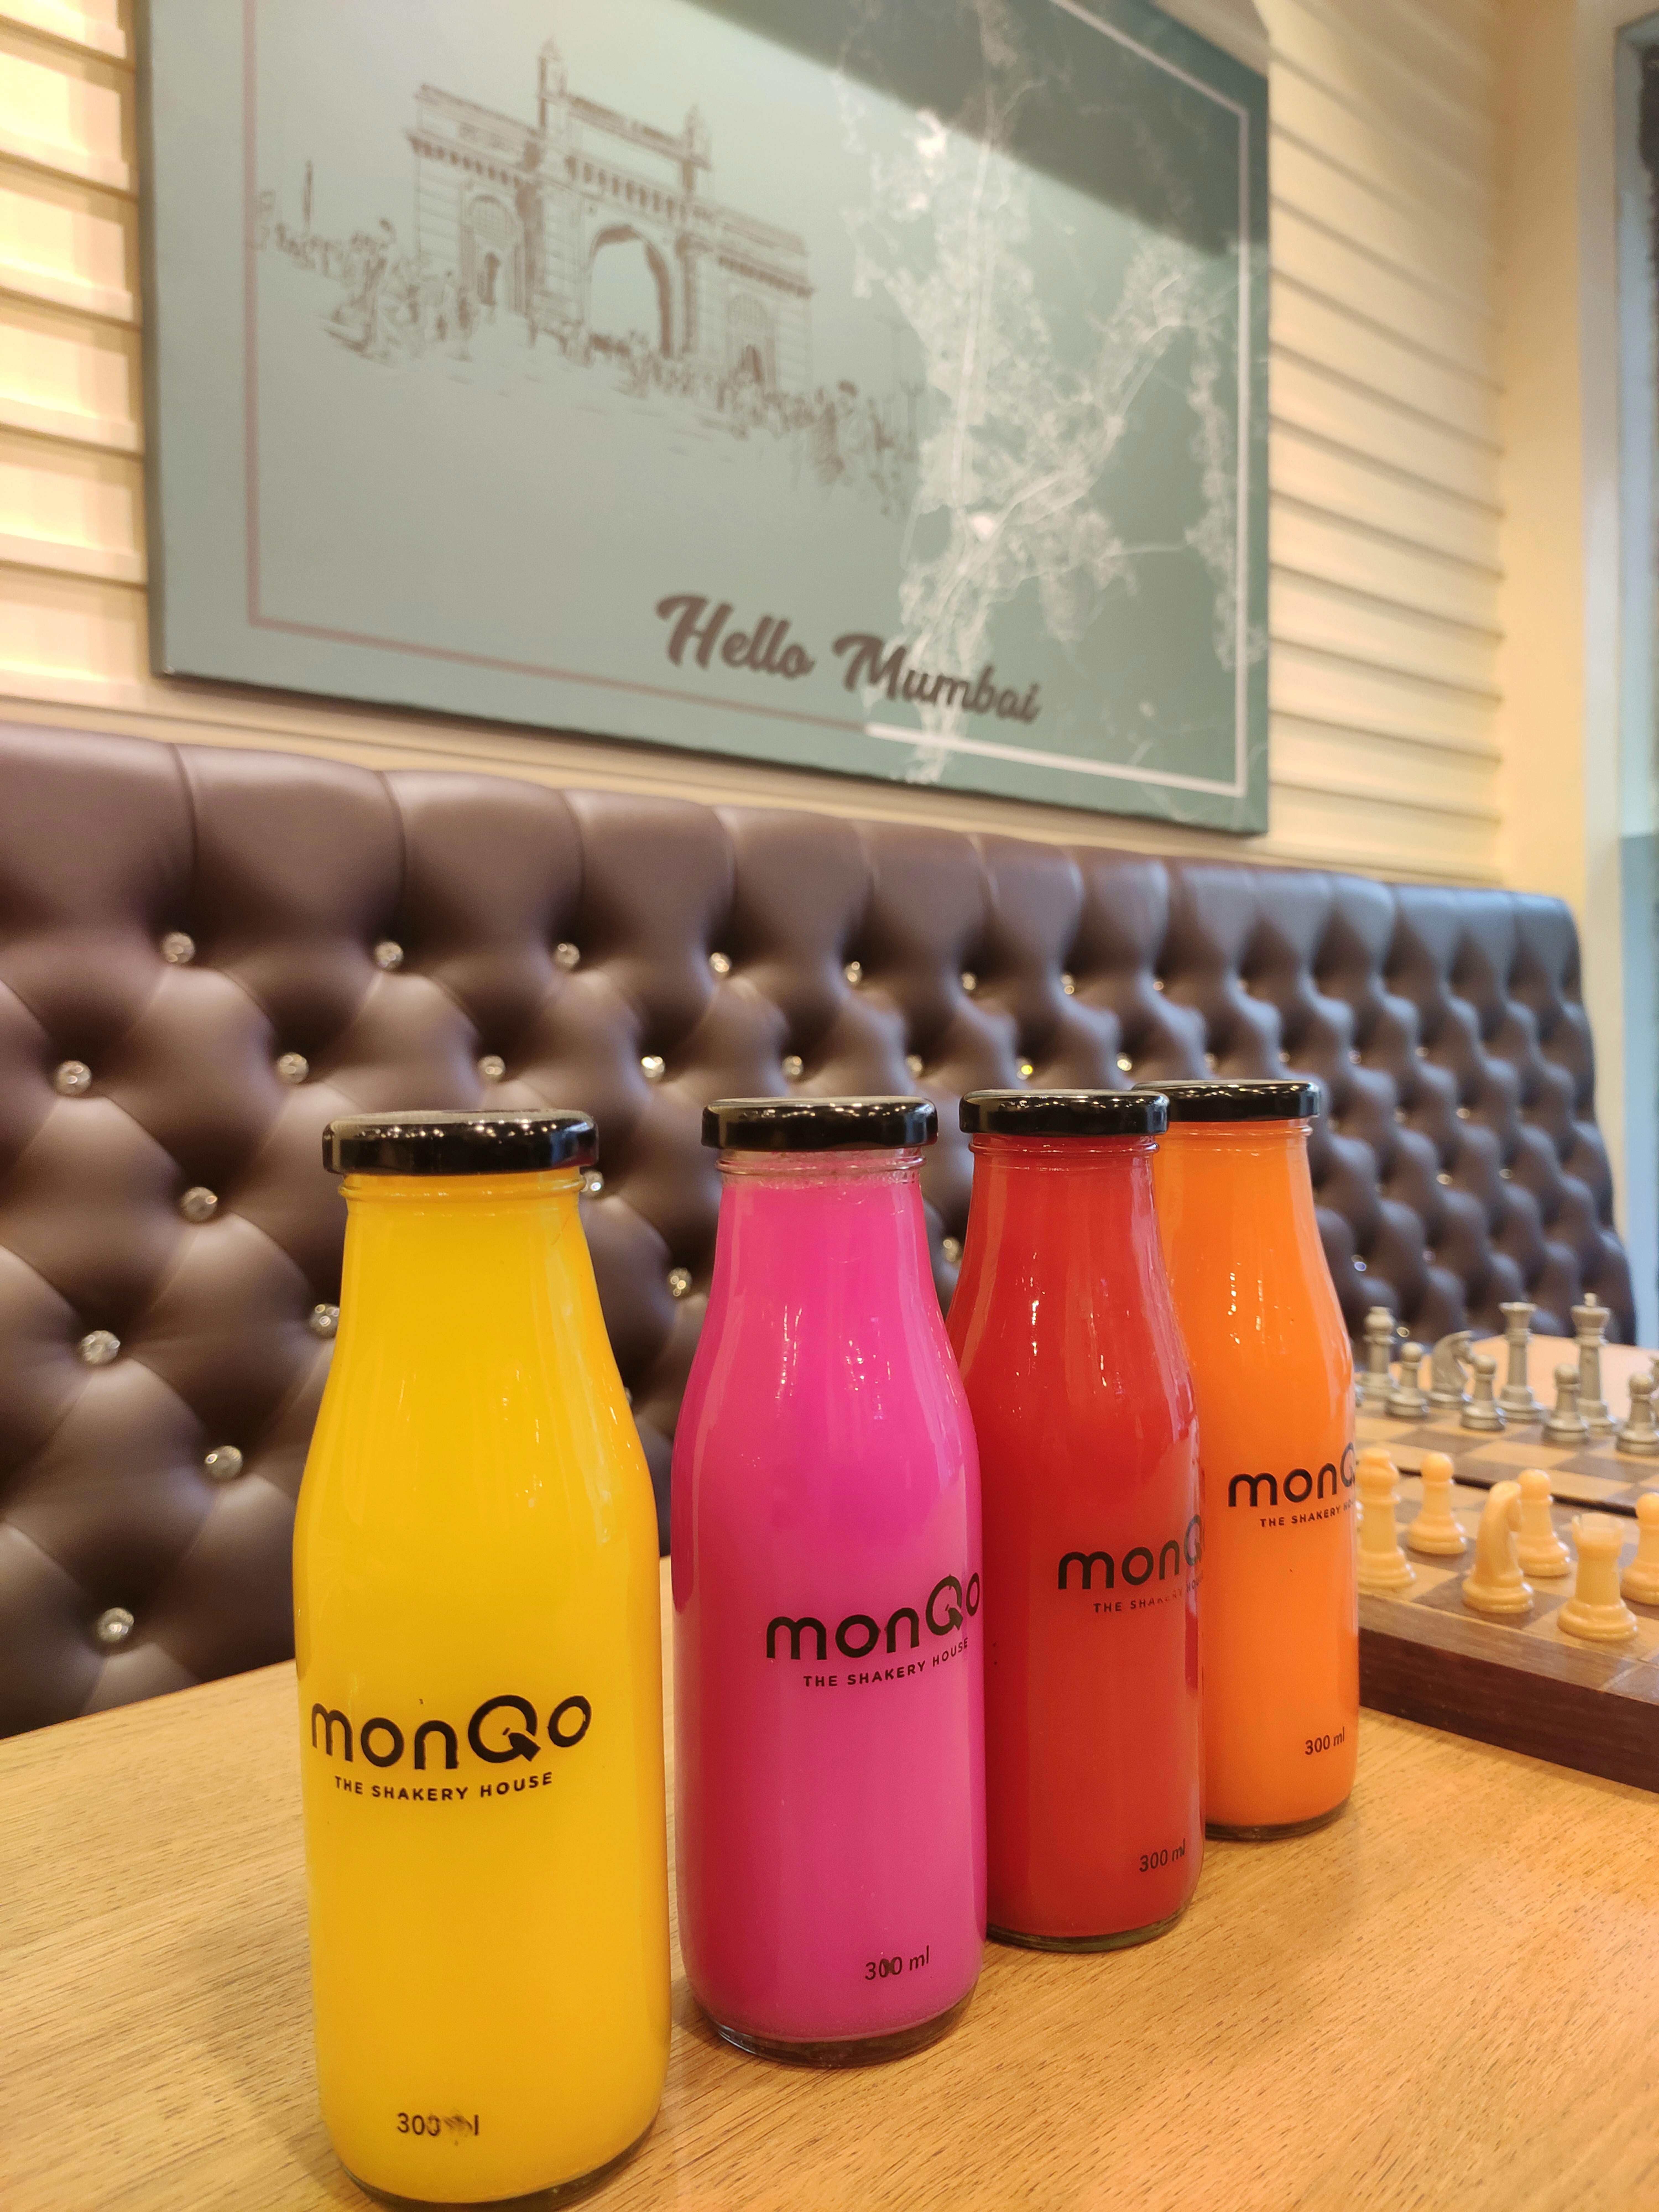 Drop By  Monqo (Shakeryhouse) For Refreshing Shakes, Juices And Much More